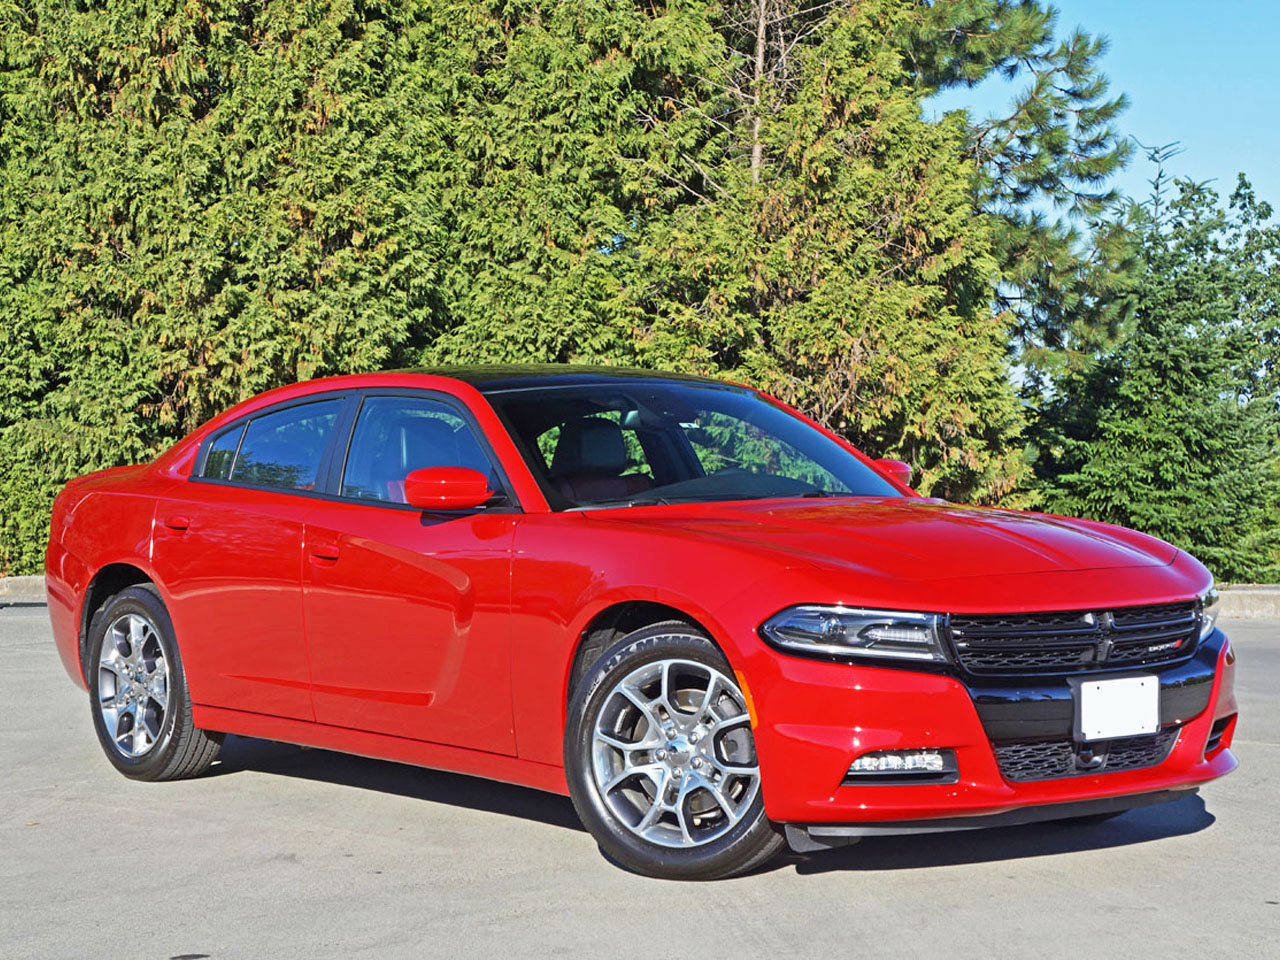 2017 Dodge Charger Sxt Plus Rallye Awd Road Test Review